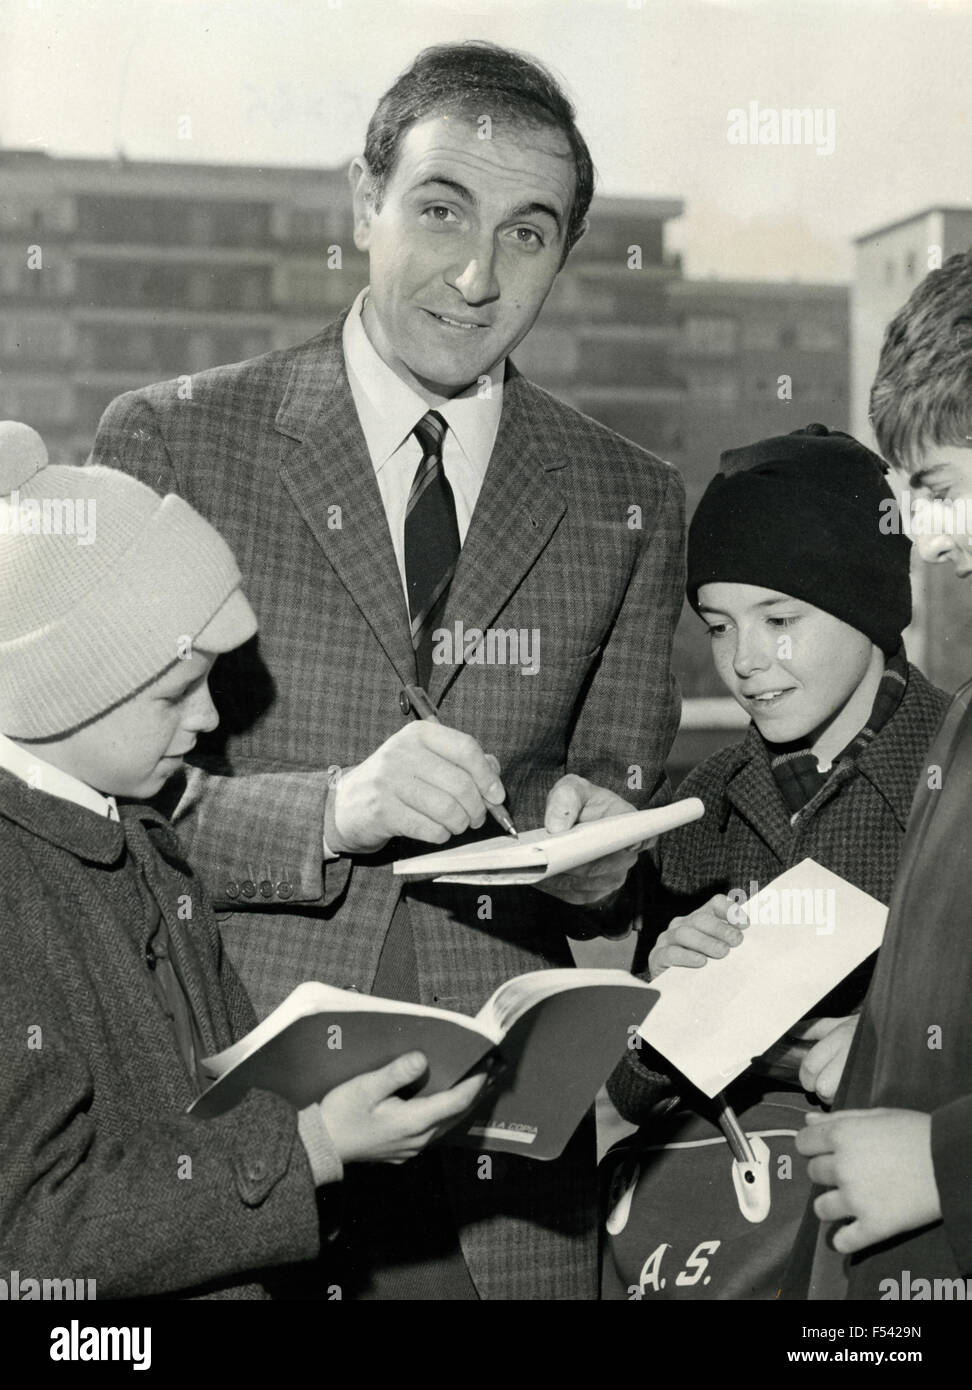 The Italian presenter Pippo Baudo signs an autograph for children - Stock Image